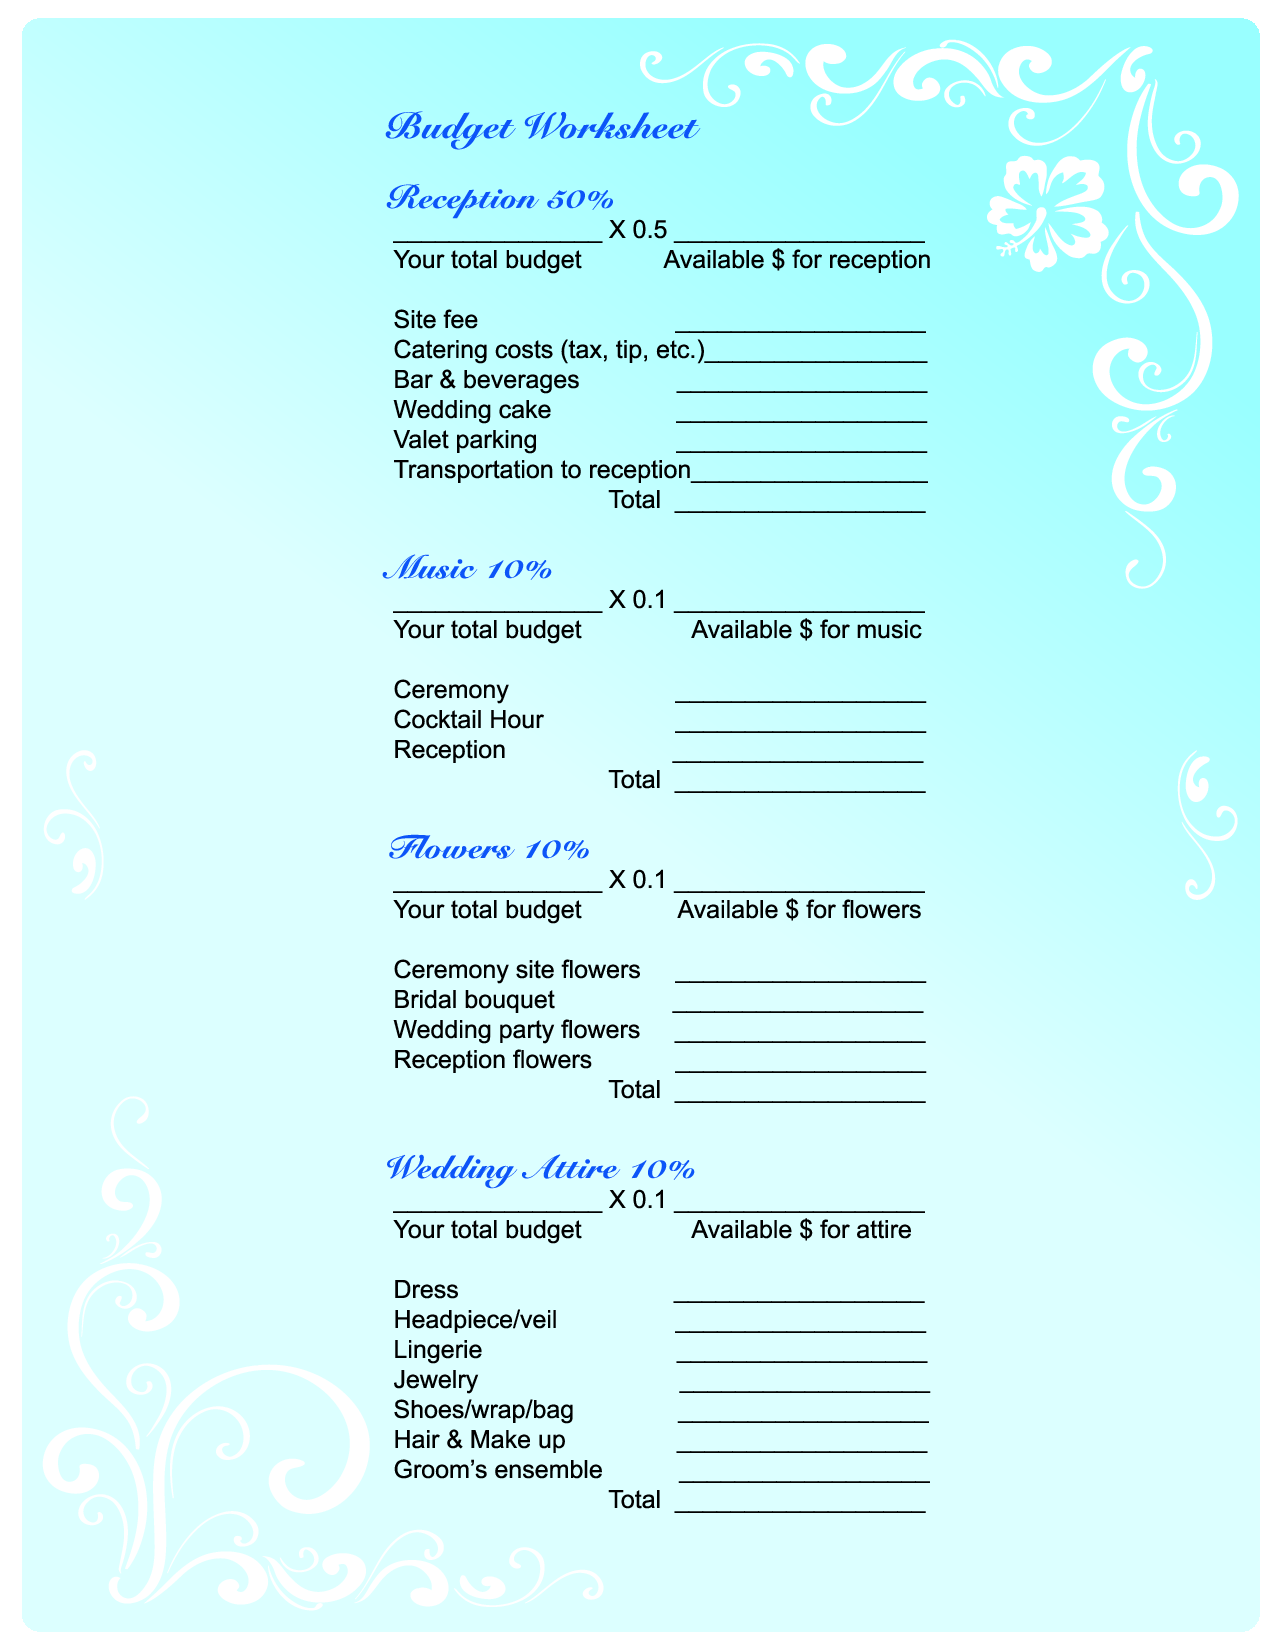 Free Wedding Planning Budget Worksheet Quelles Astuces